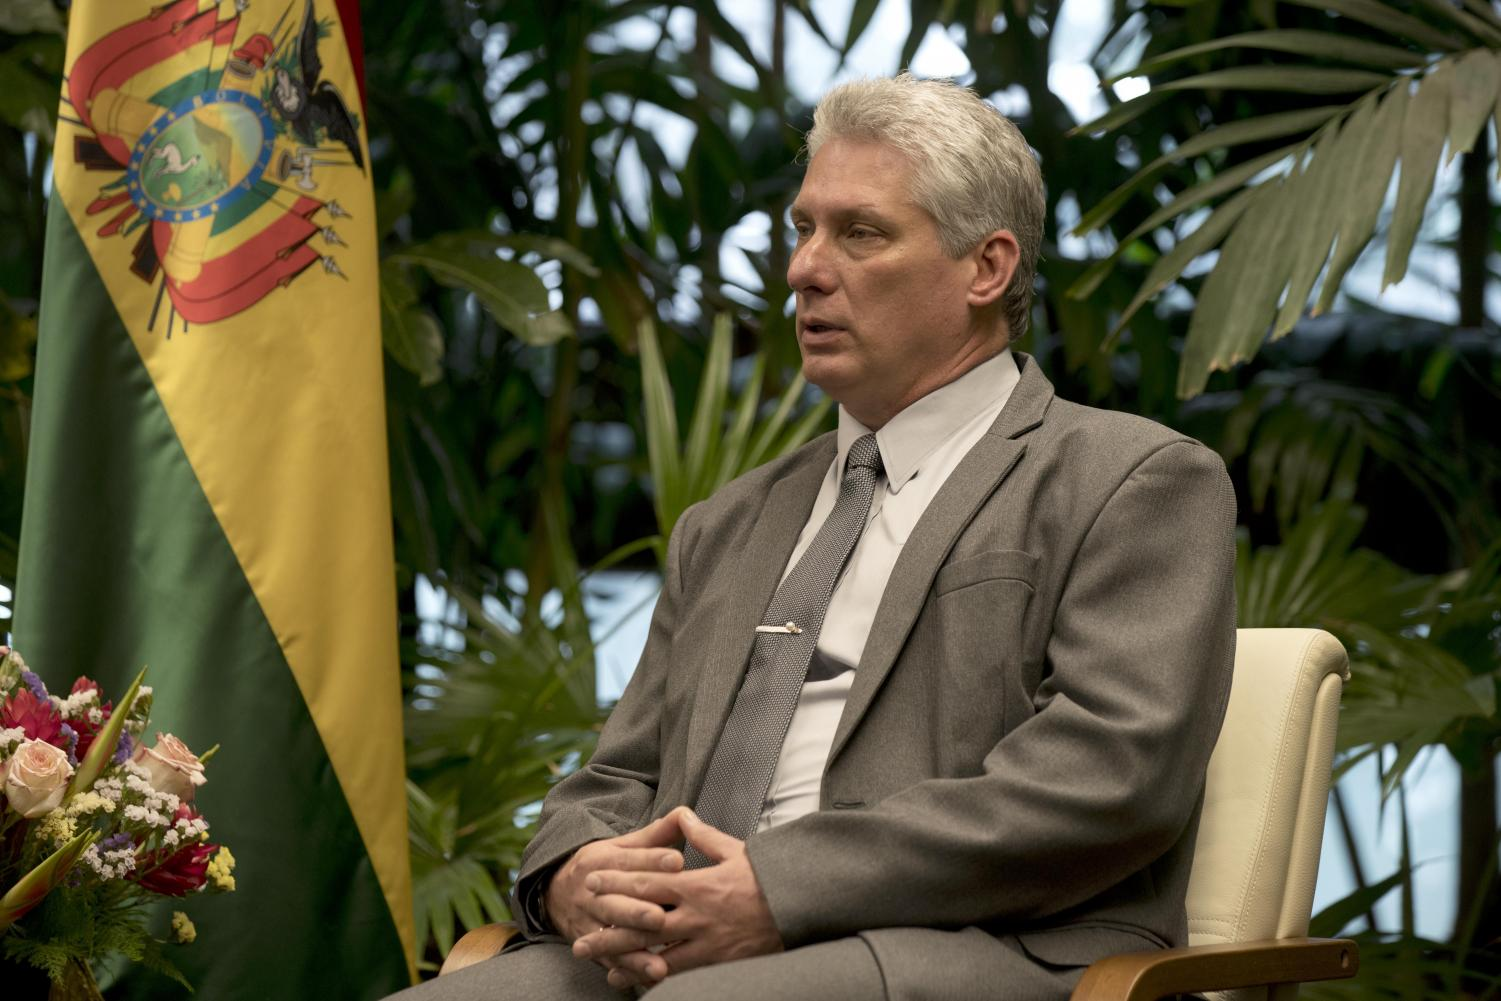 Cuba's President Miguel Diaz-Canel during an April 23, 2018 meeting with the Bolivian president at Revolution Palace in Havana, Cuba.  (Ramon Espinosa | Pool via AP)